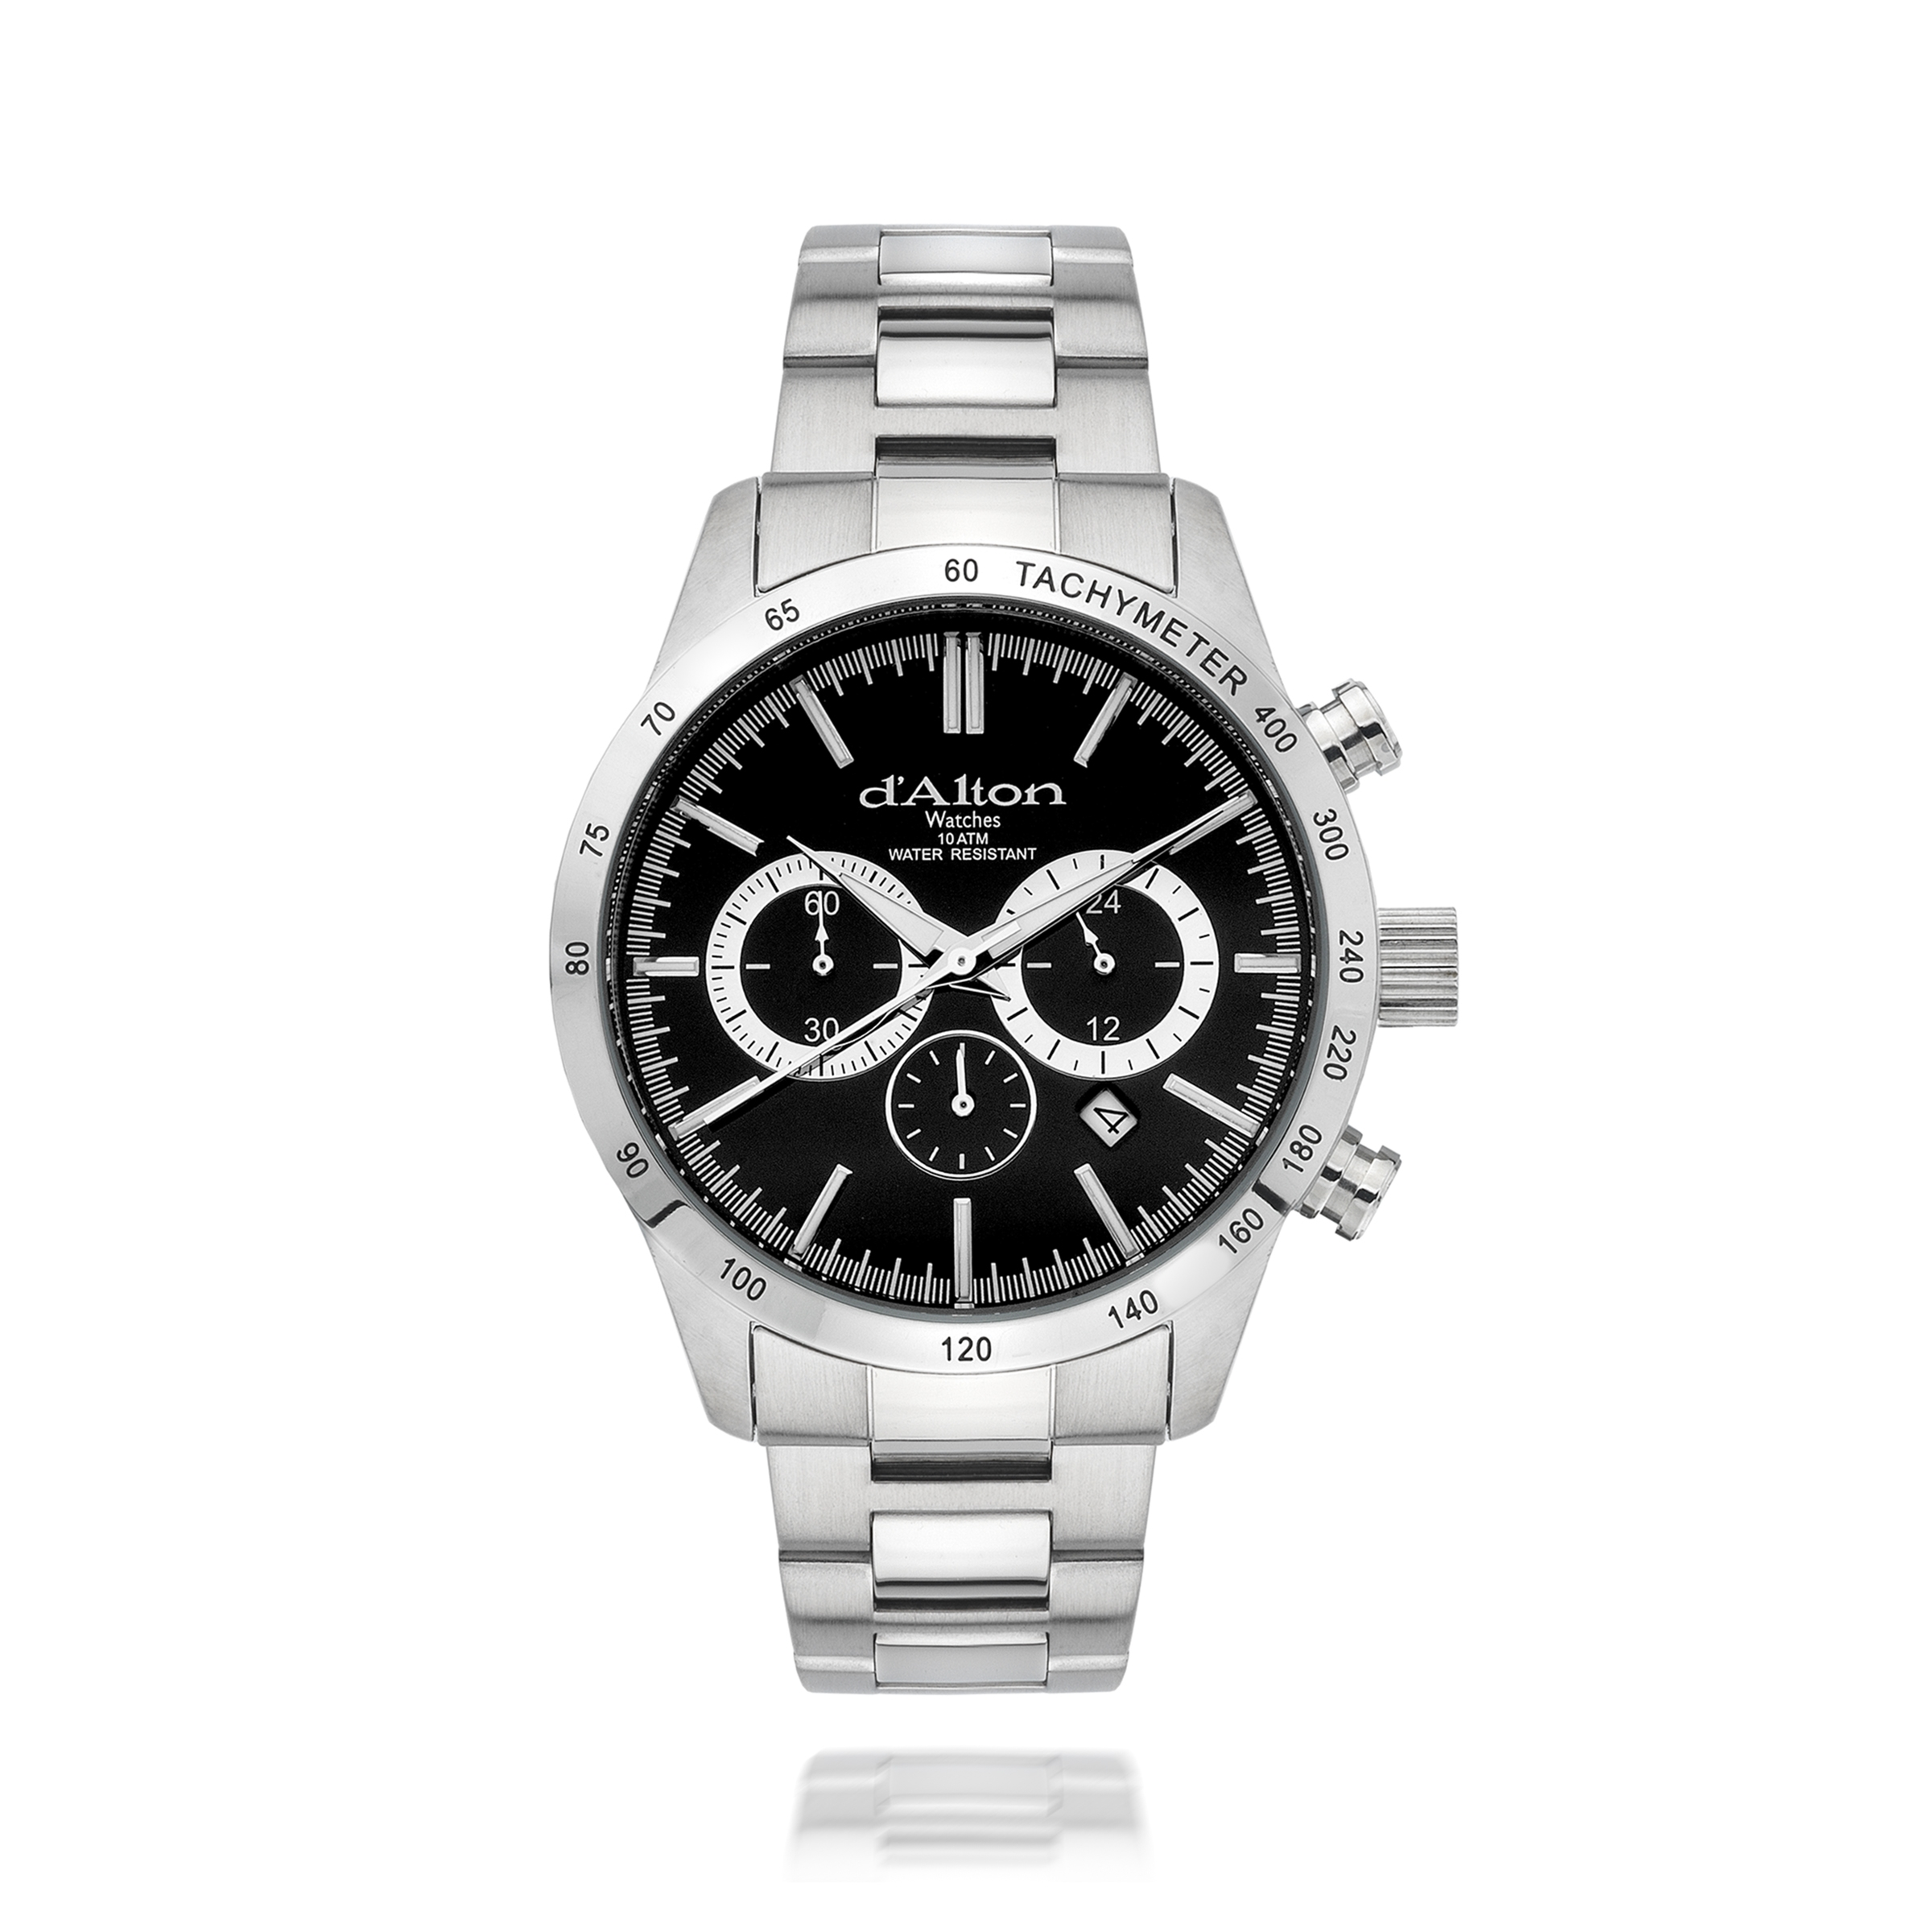 Gents D'Alton stainless steel chronograph watch with black dial, date function and tachymeter bezel. Water resistant 3ATM